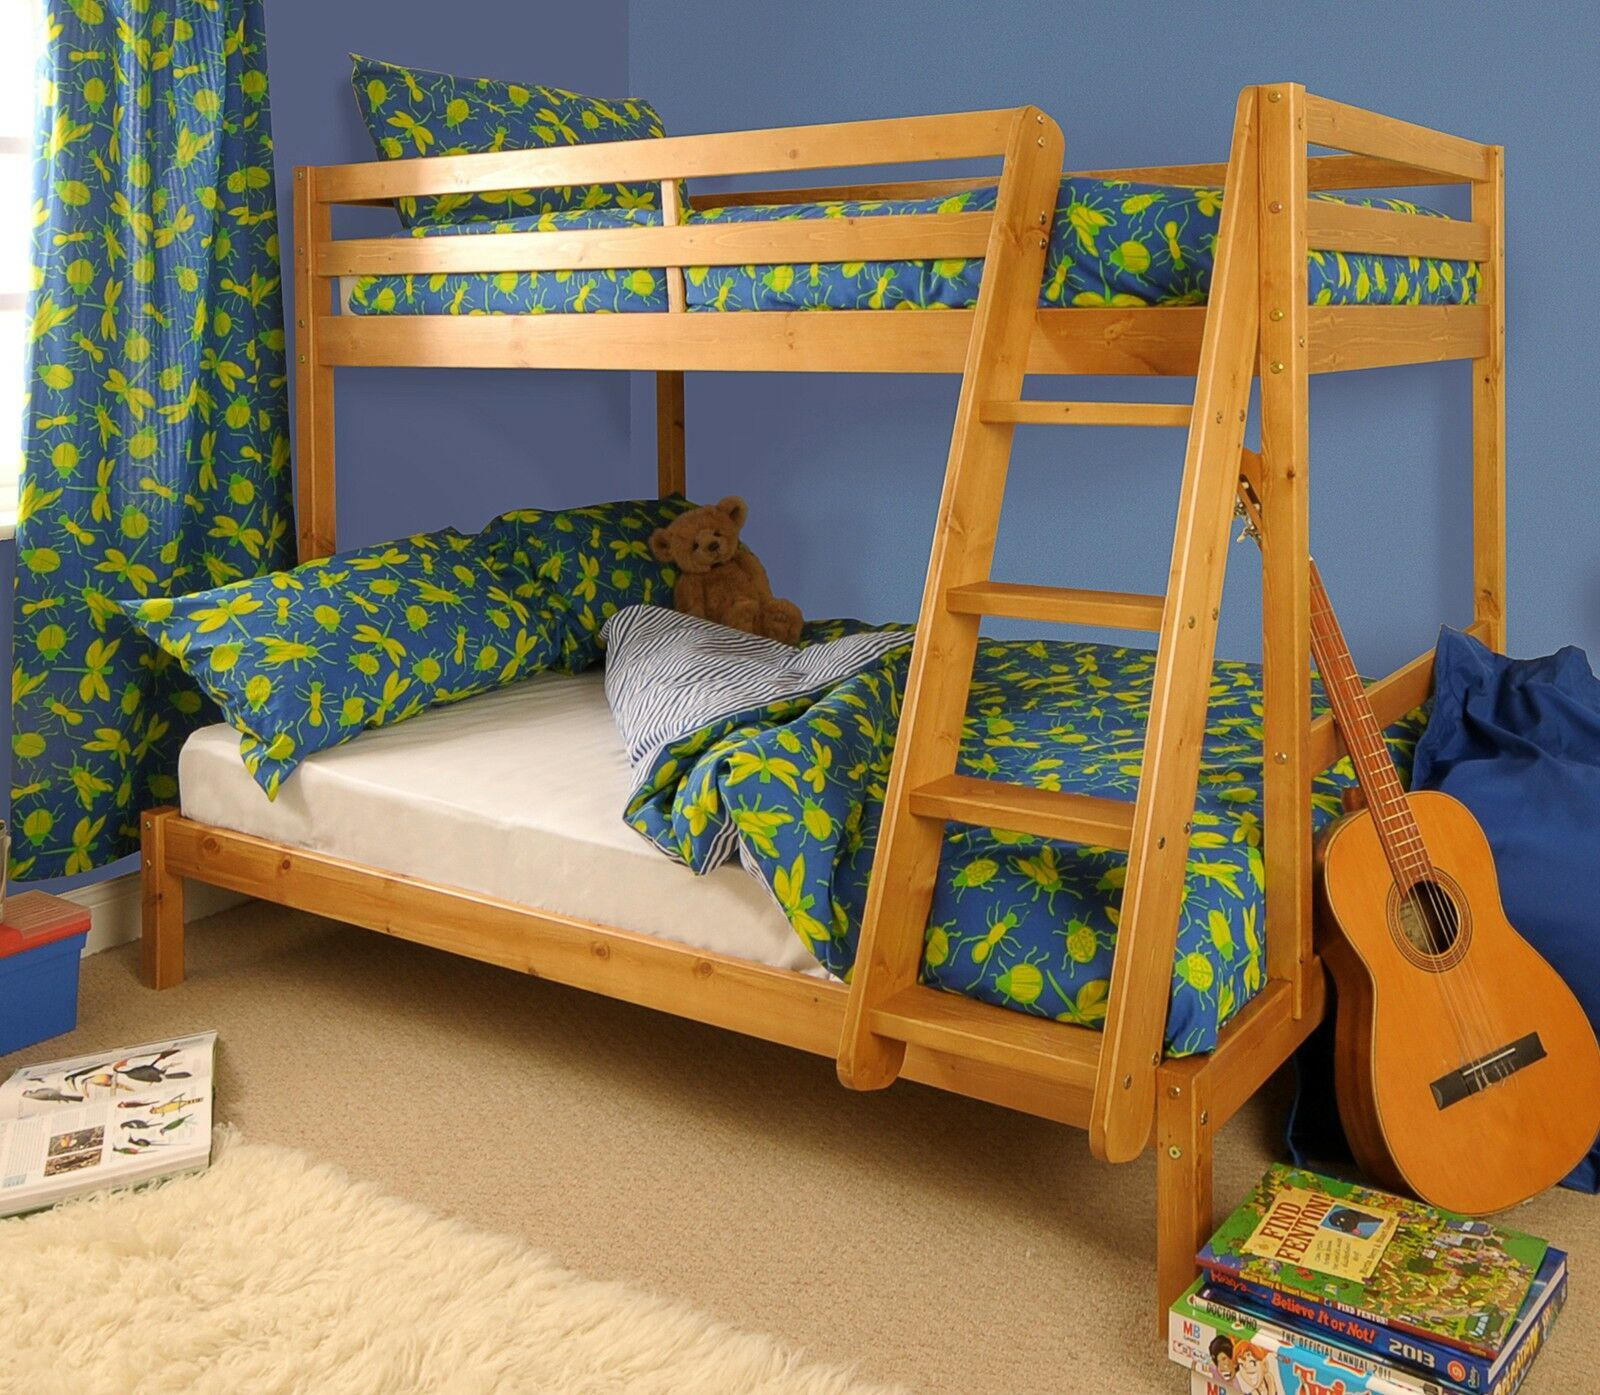 Best Pine Triple Bunk Beds In 2020 Bunk Beds With Storage 400 x 300